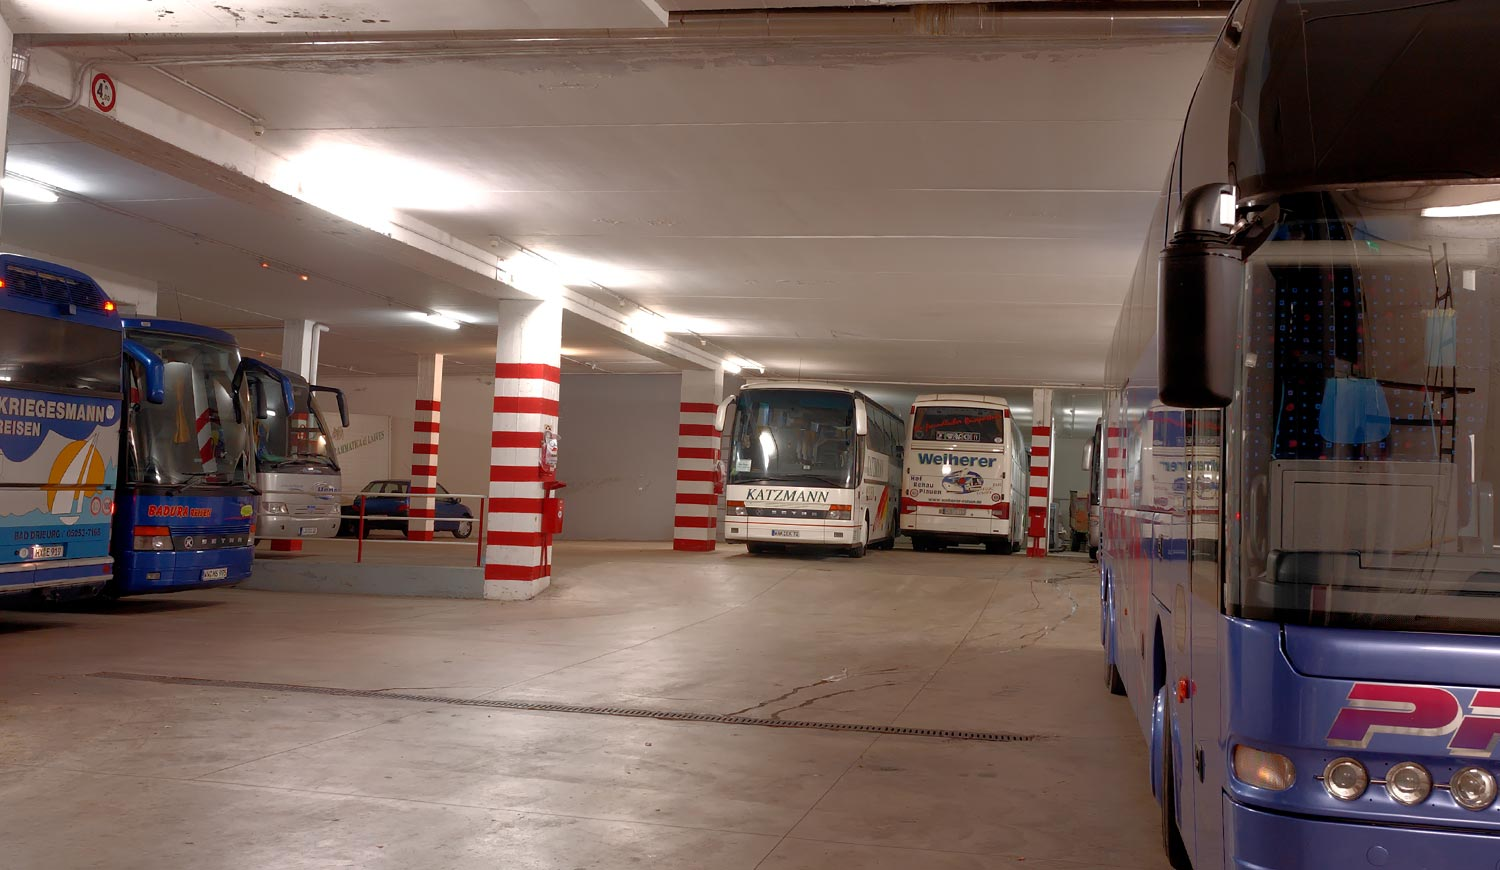 Detail of the bus parking at the Hotel in Bolzano